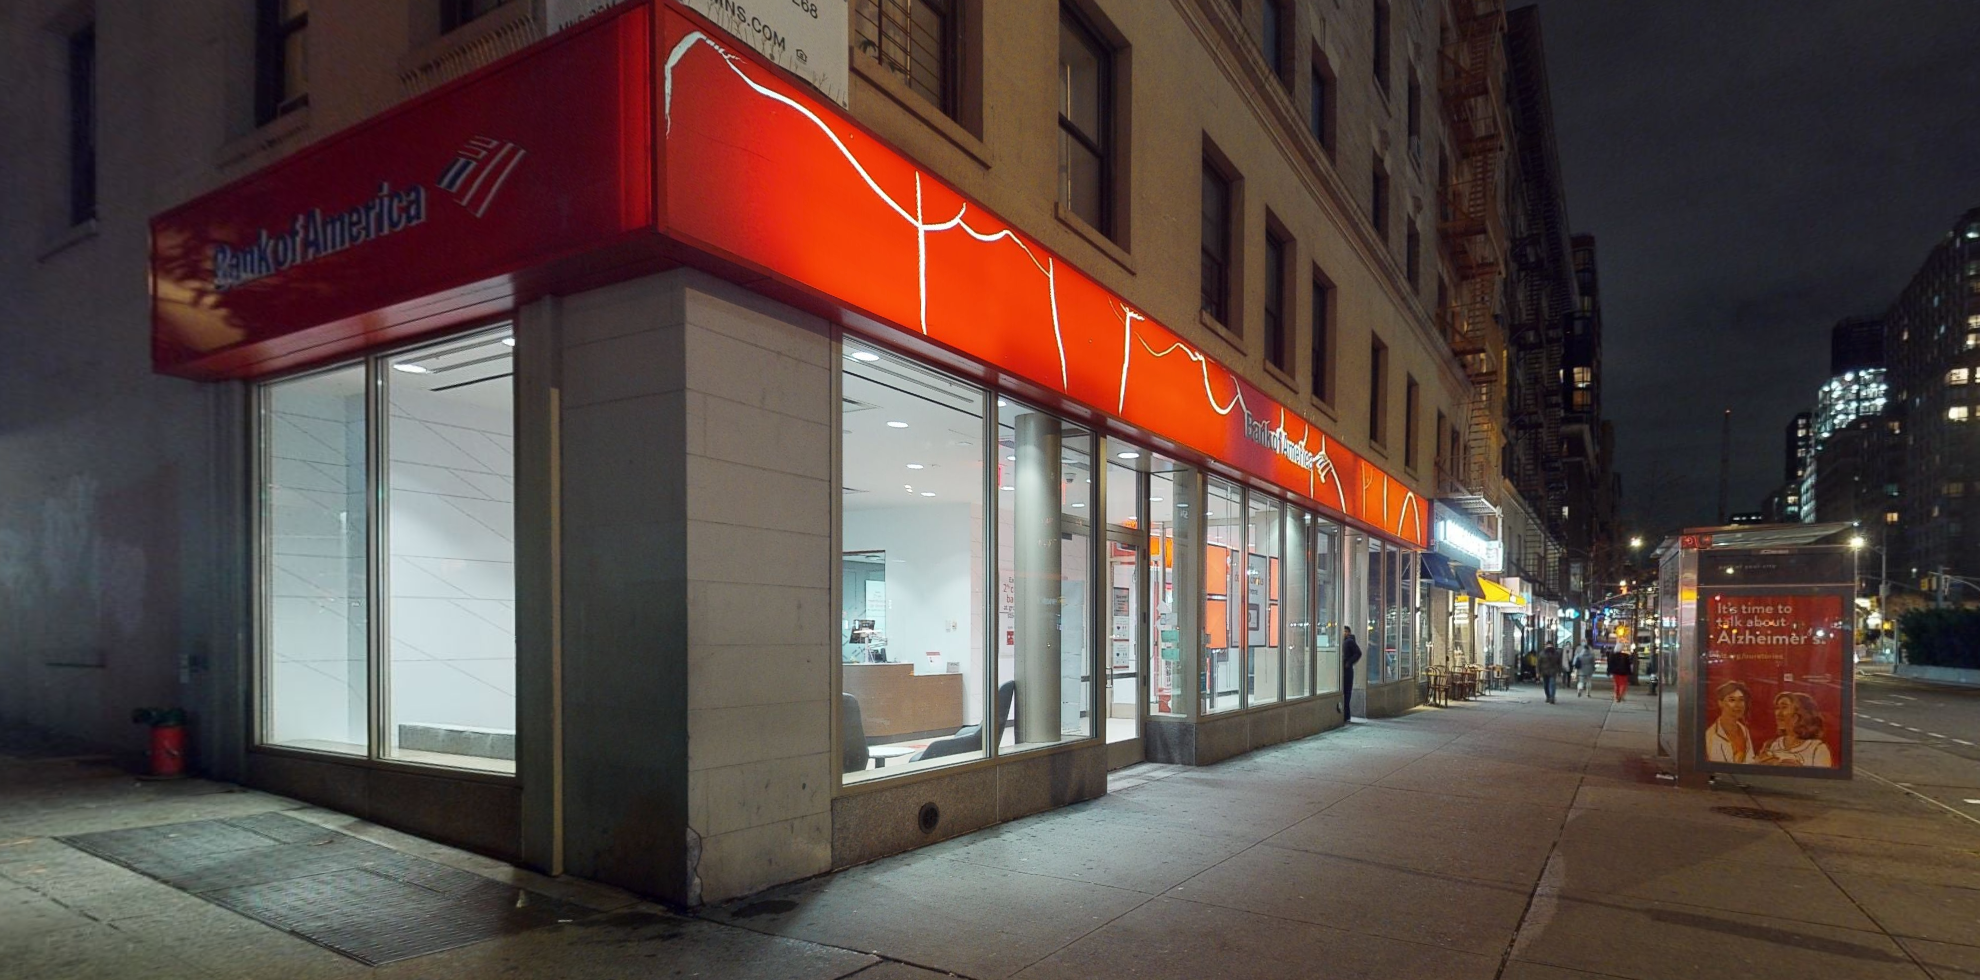 Bank of America financial center with walk-up ATM | 2574 Broadway, New York, NY 10025